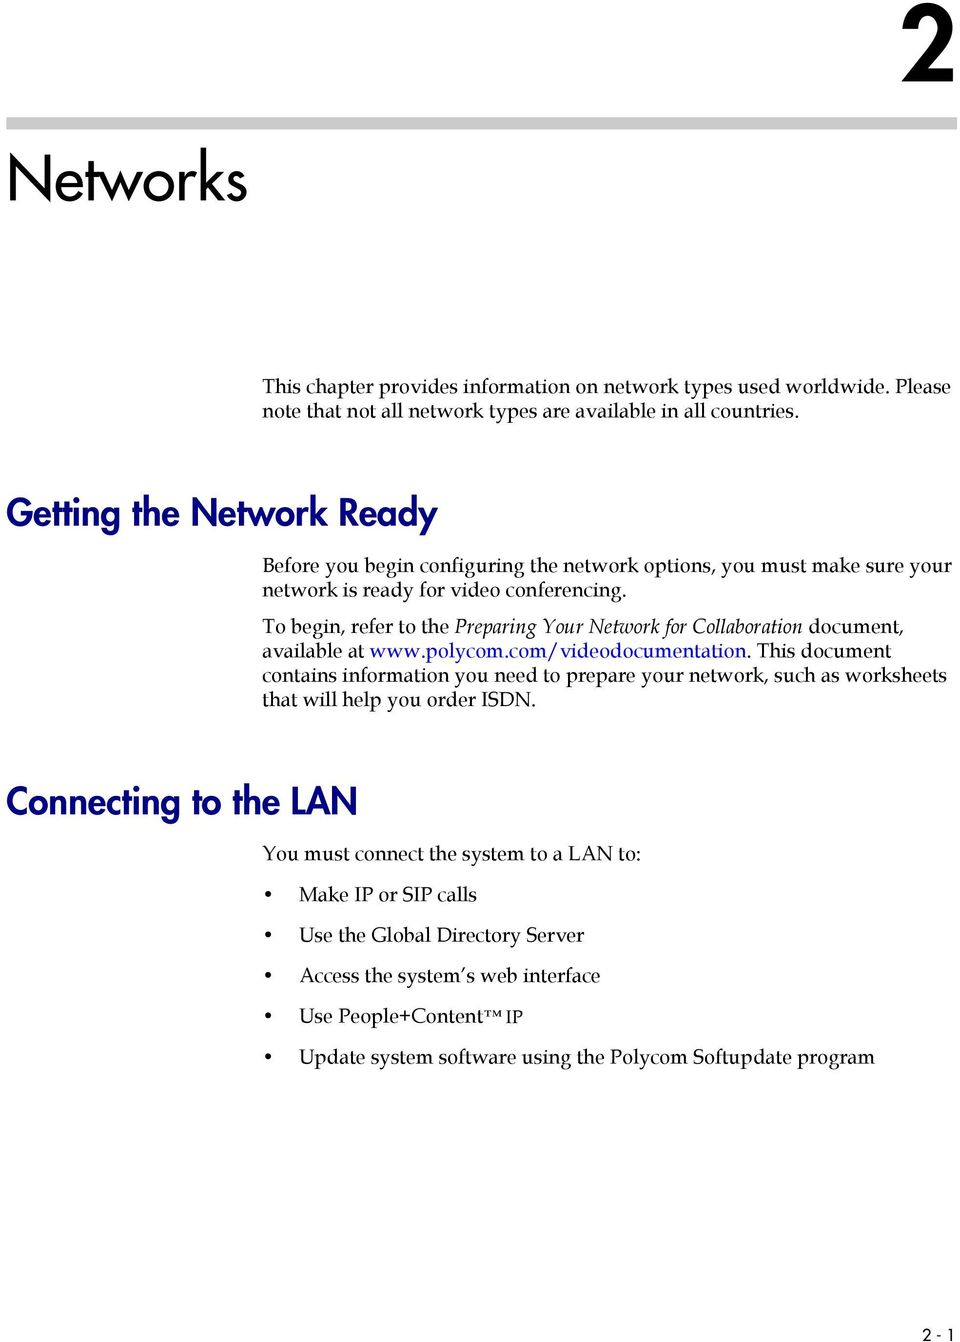 To begin, refer to the Preparing Your Network for Collaboration document, available at www.polycom.com/videodocumentation.